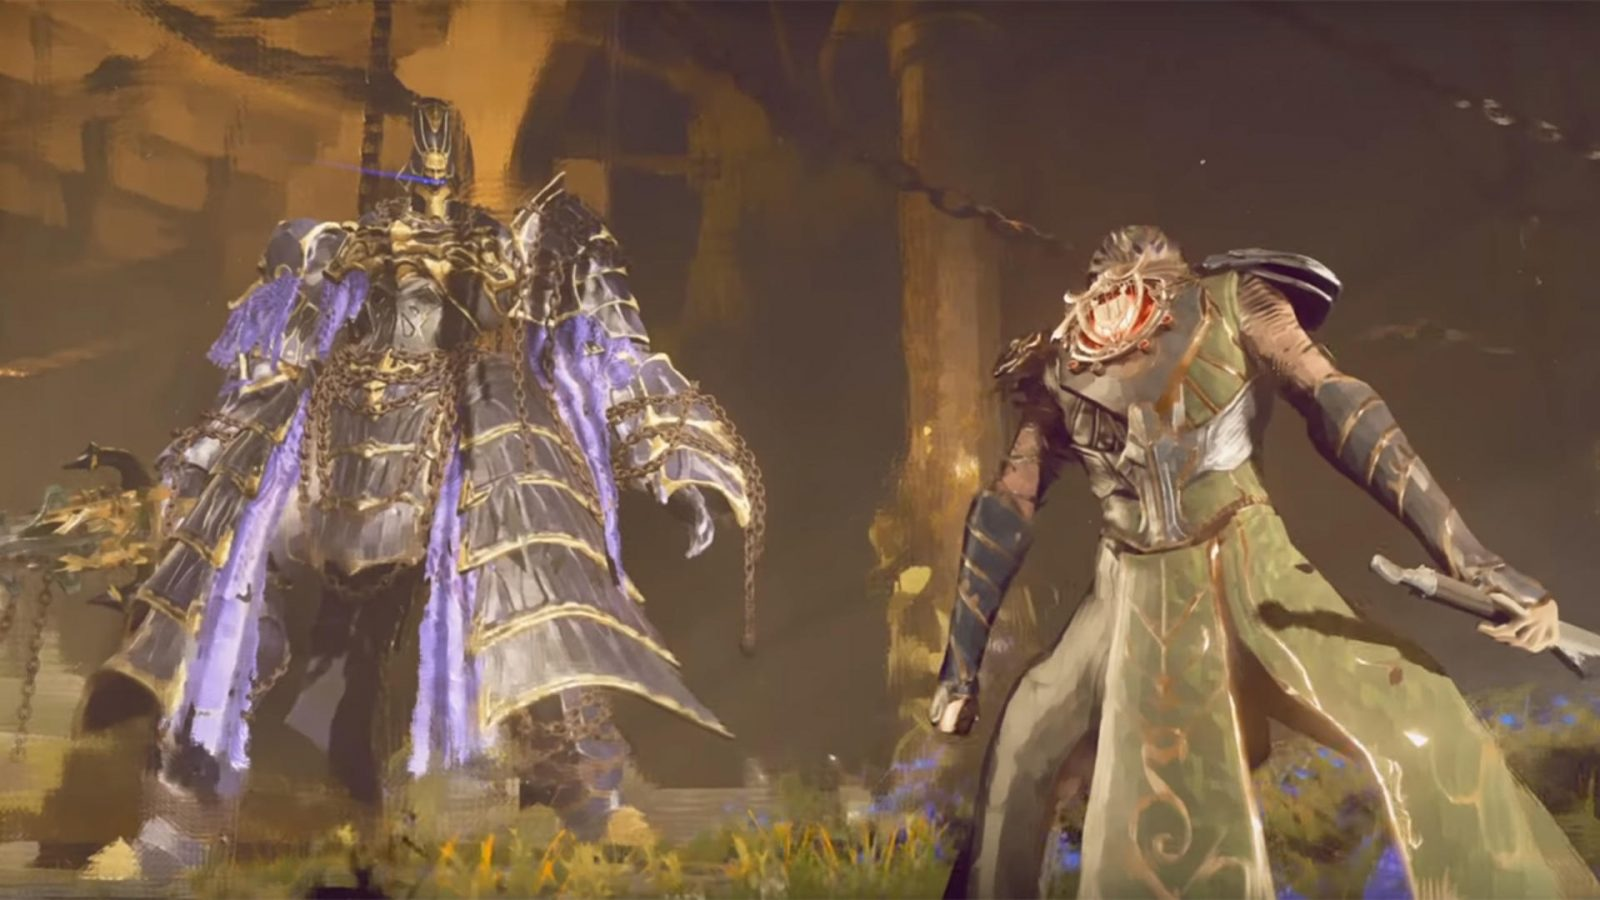 Armored Monsters and Flying Swords: Here's Your First Look at Babylon's Fall's Gameplay